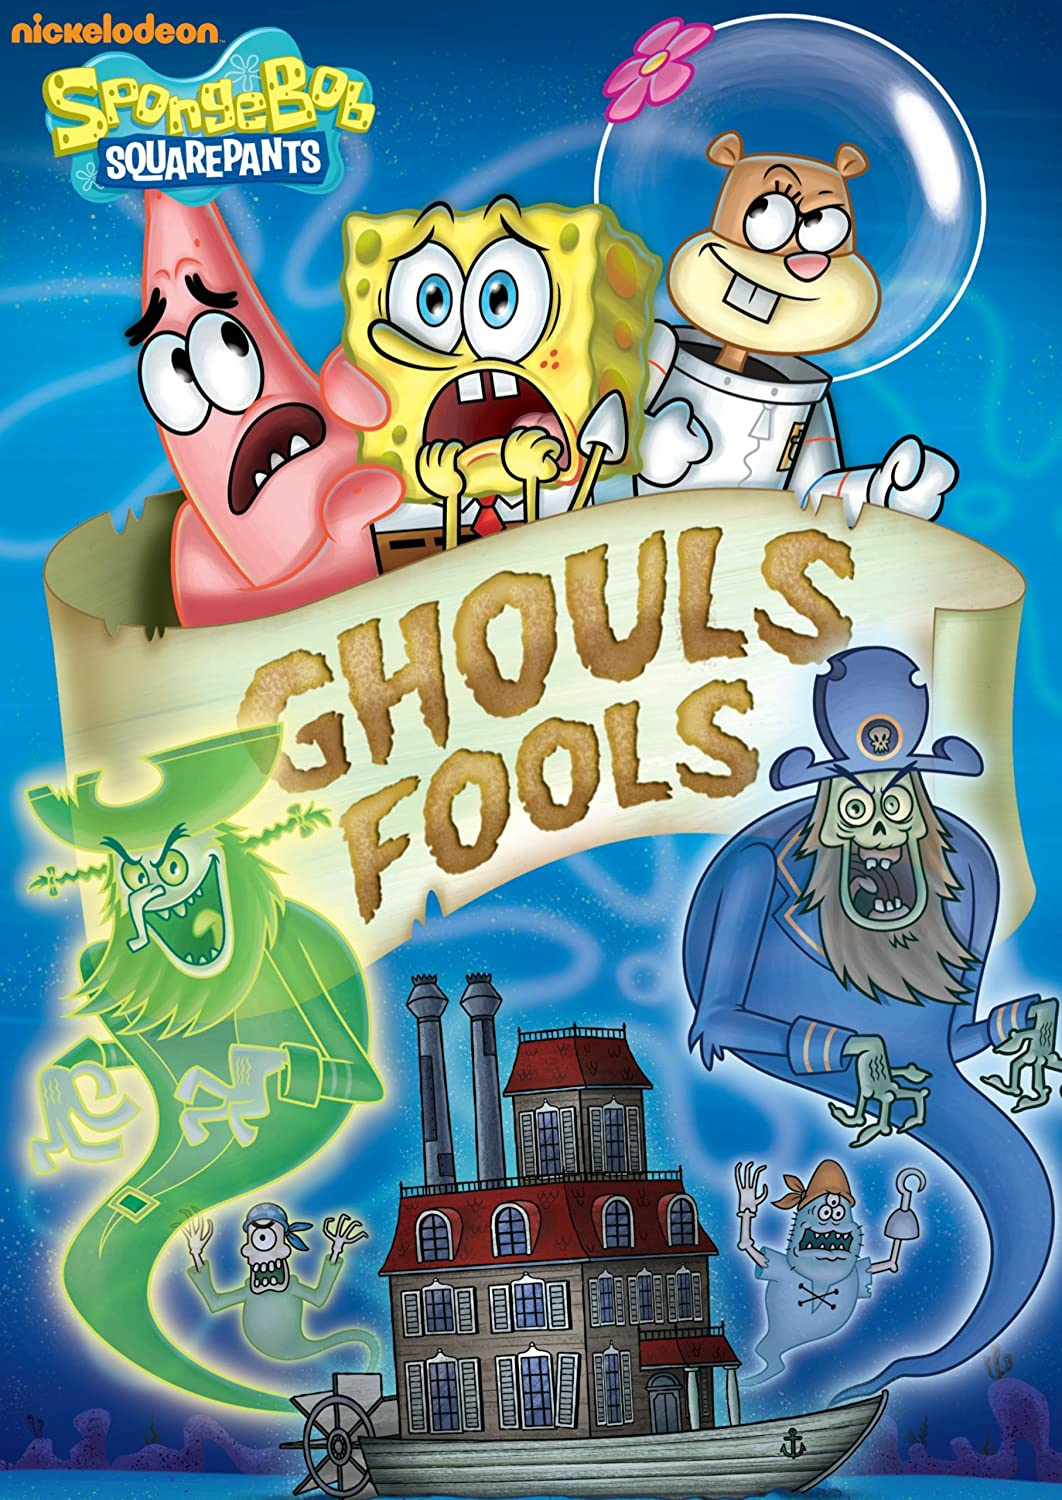 nickelodeon has some great dvds to get us all in the halloween spirit one very lucky reader will win all 6 of these titles